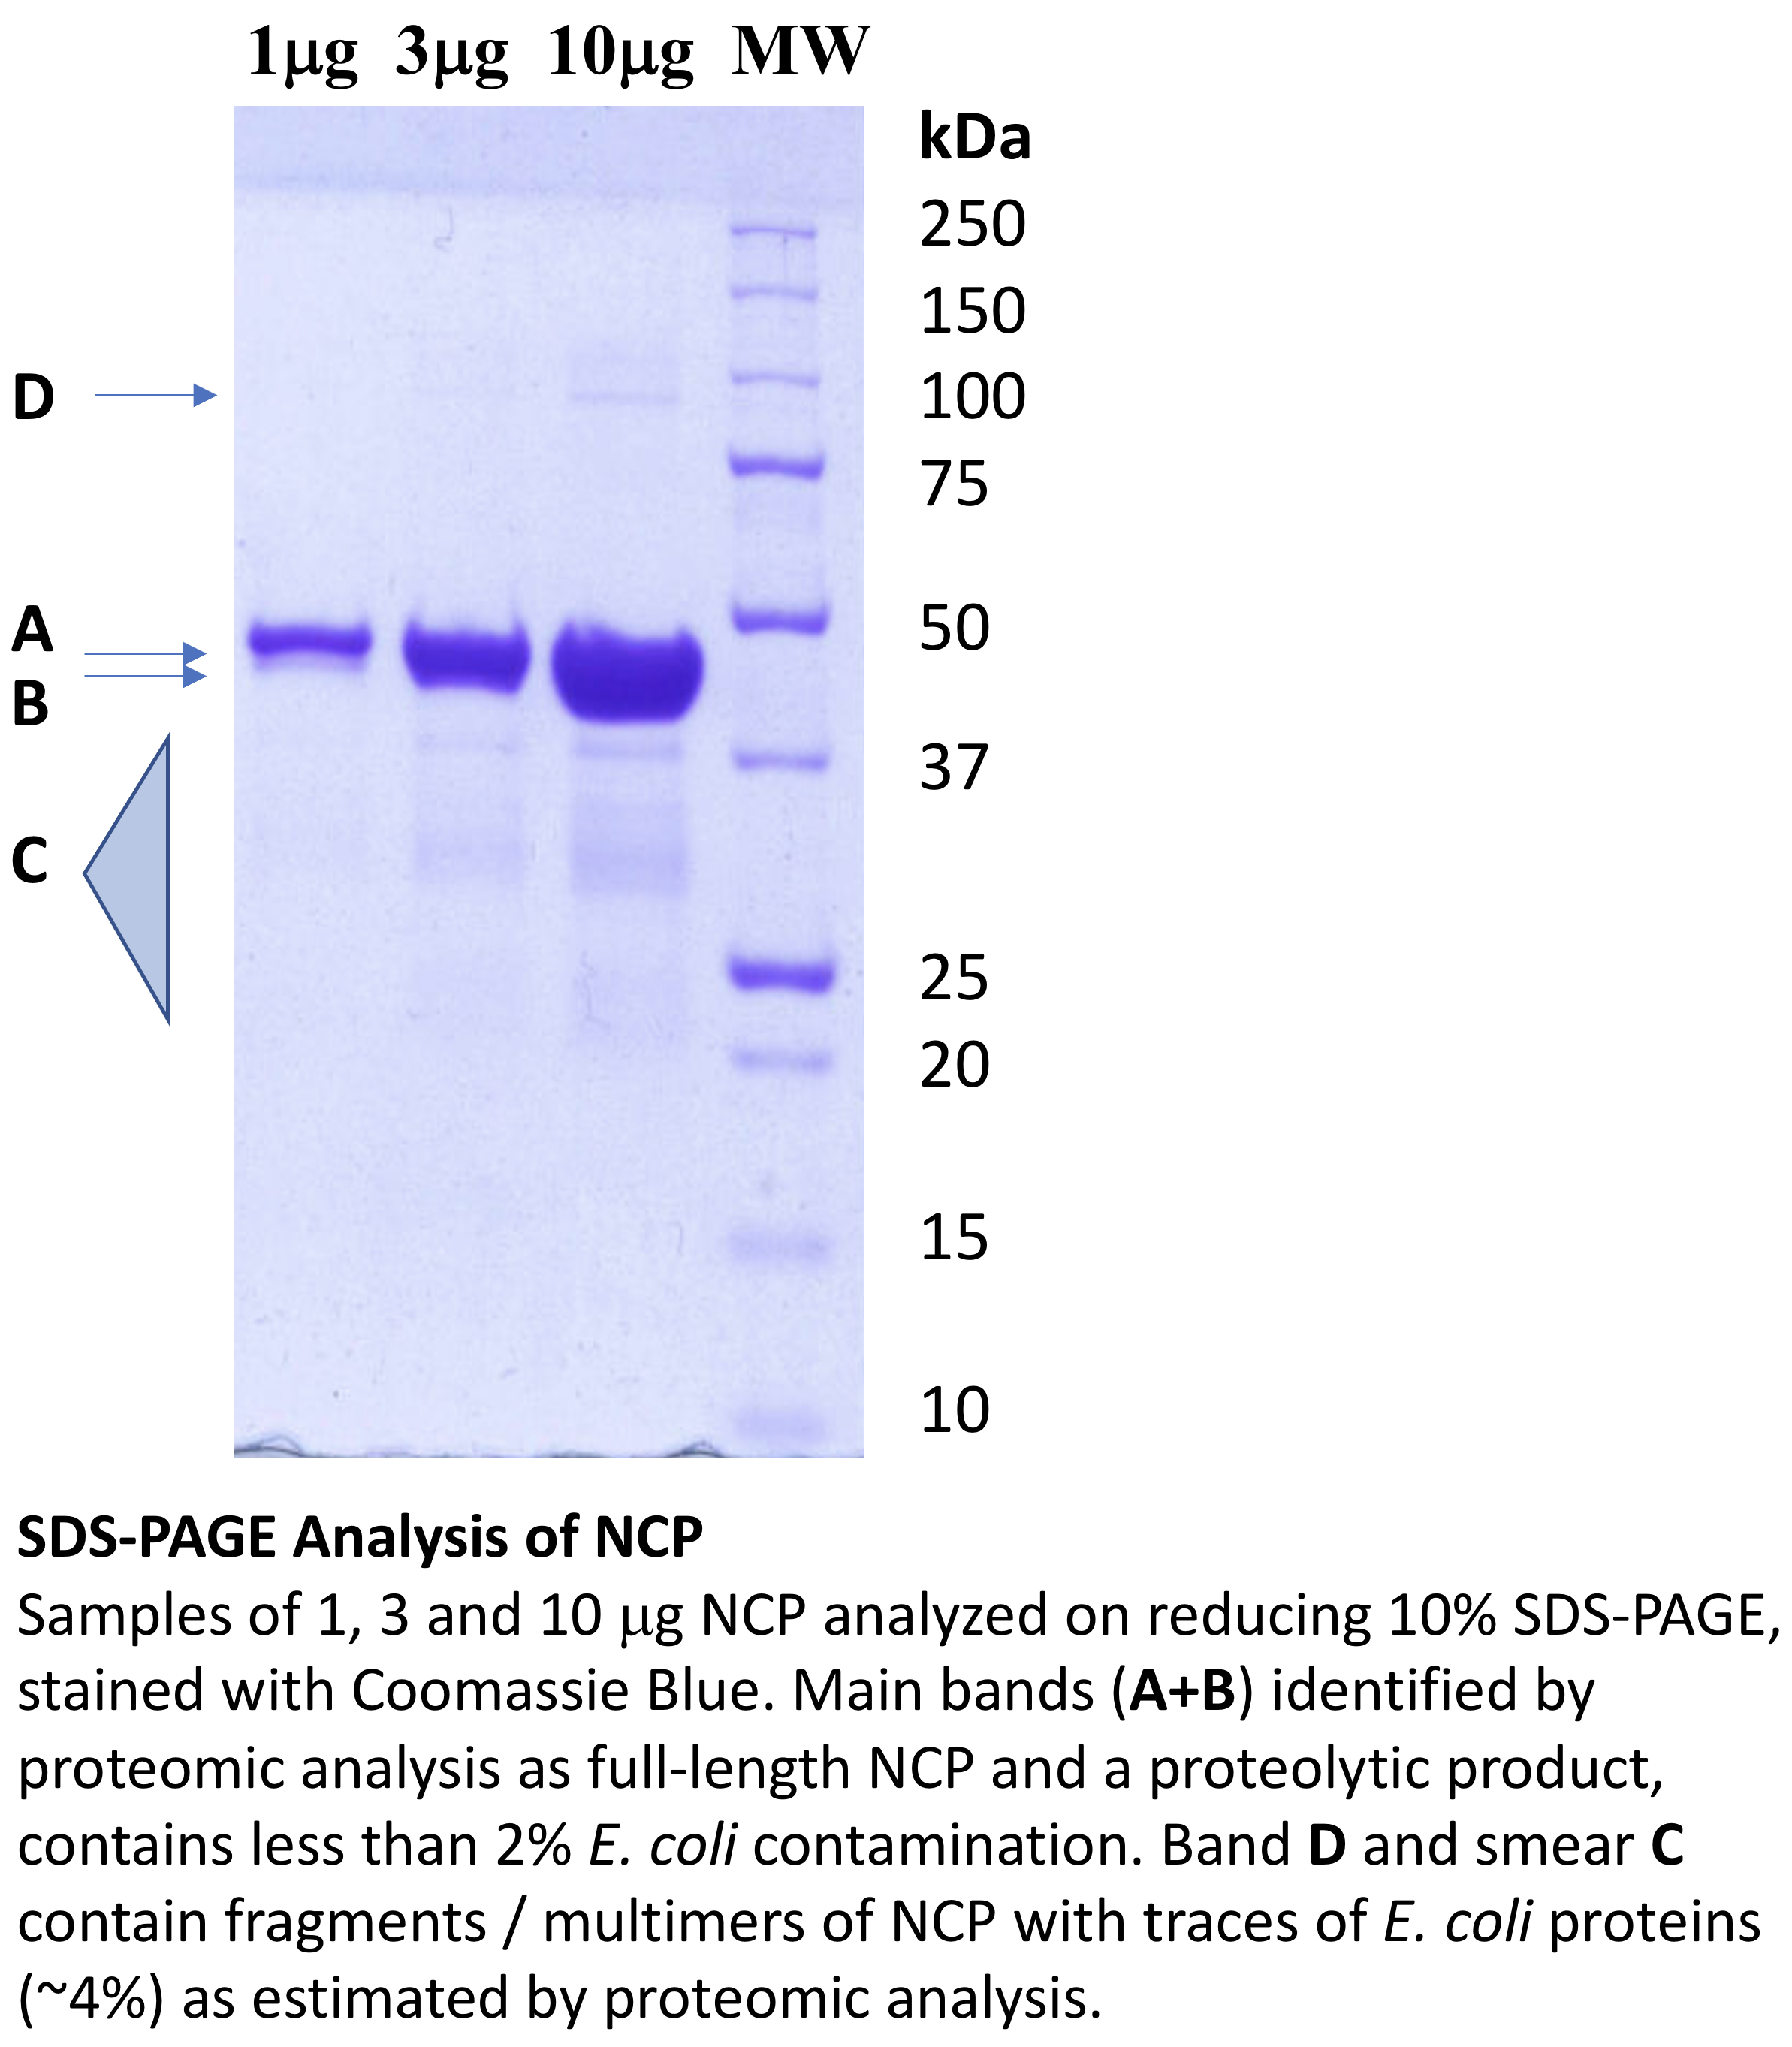 SDS-Page Analysis of NCP